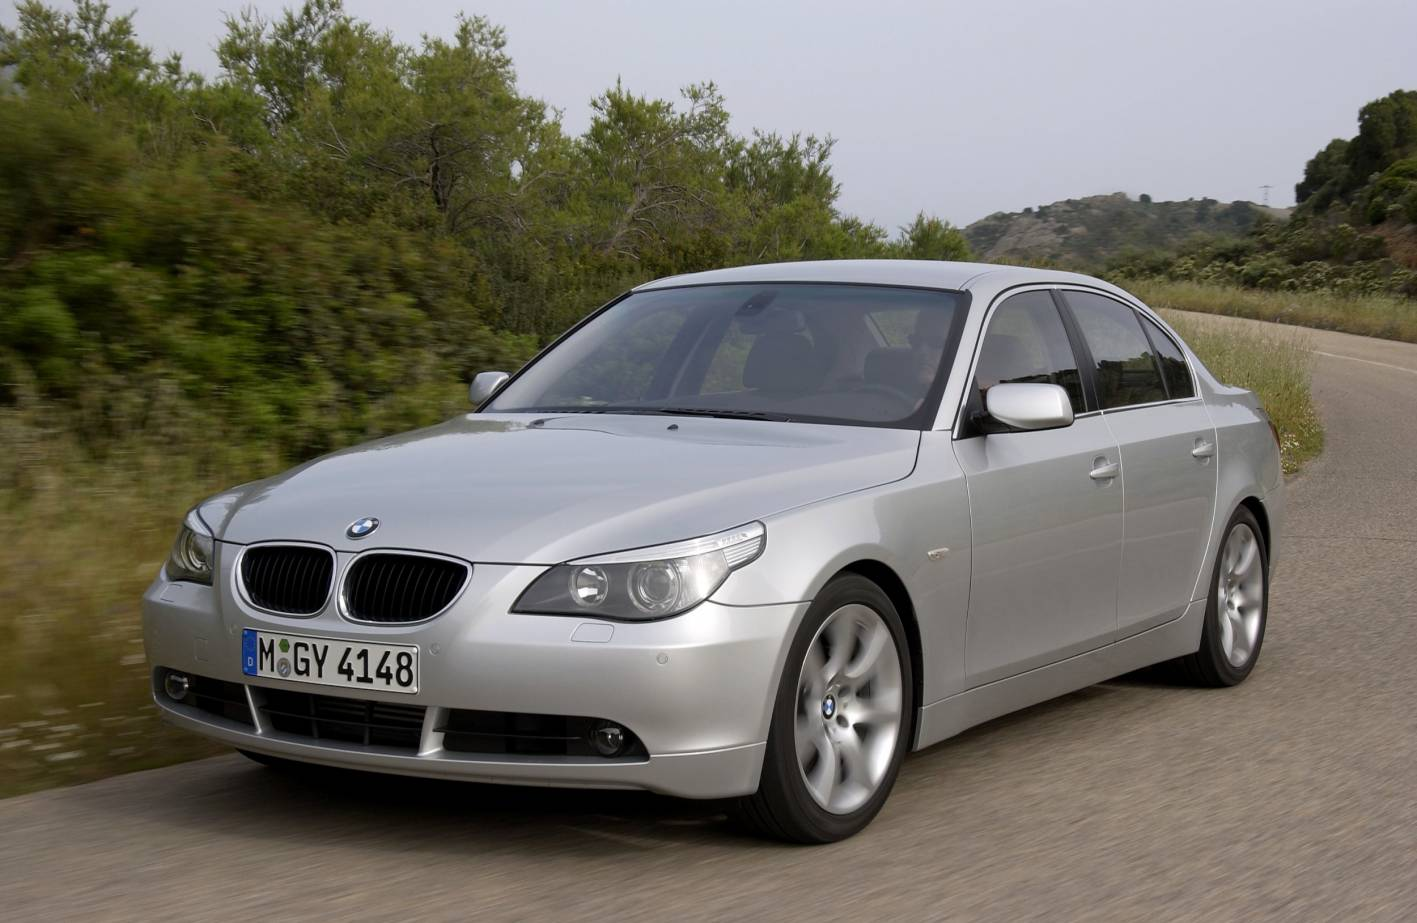 the gearbox car news reviews and advice car of the week bmw 525i review. Black Bedroom Furniture Sets. Home Design Ideas